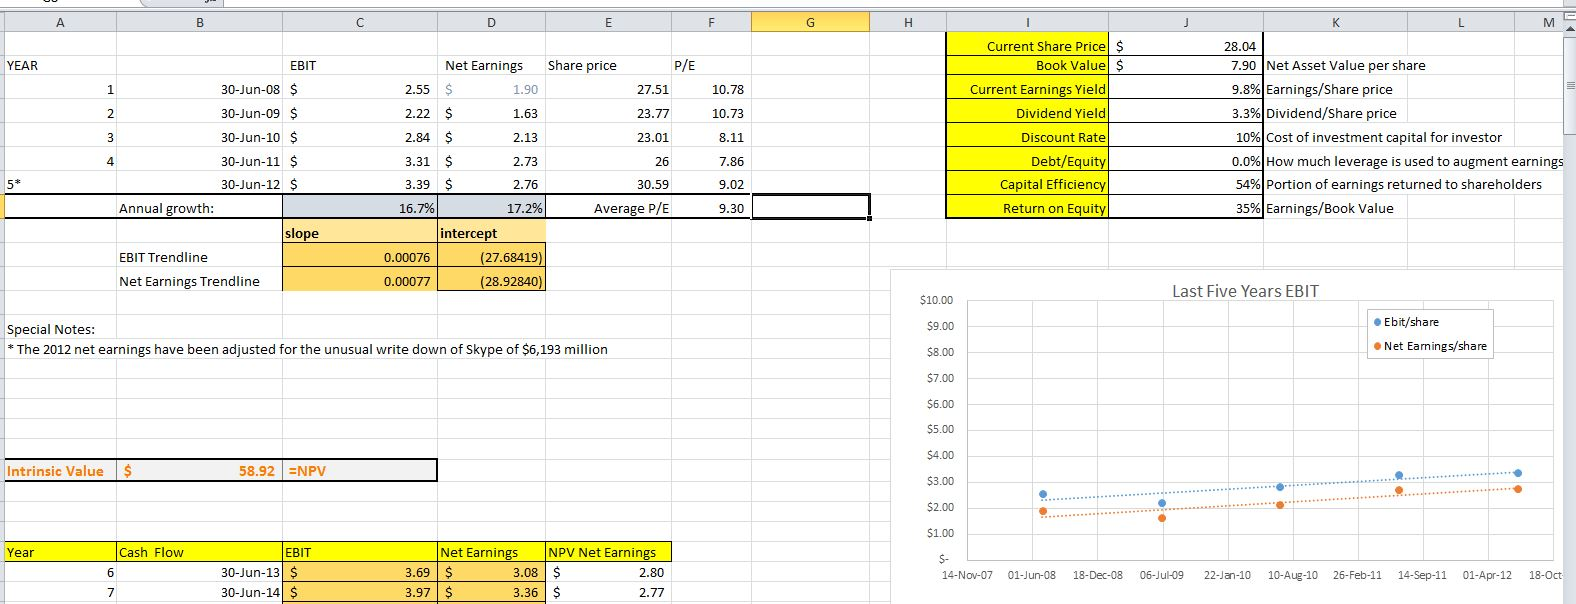 intrinsic value calculator excel template - canadian diversified investor september 2013